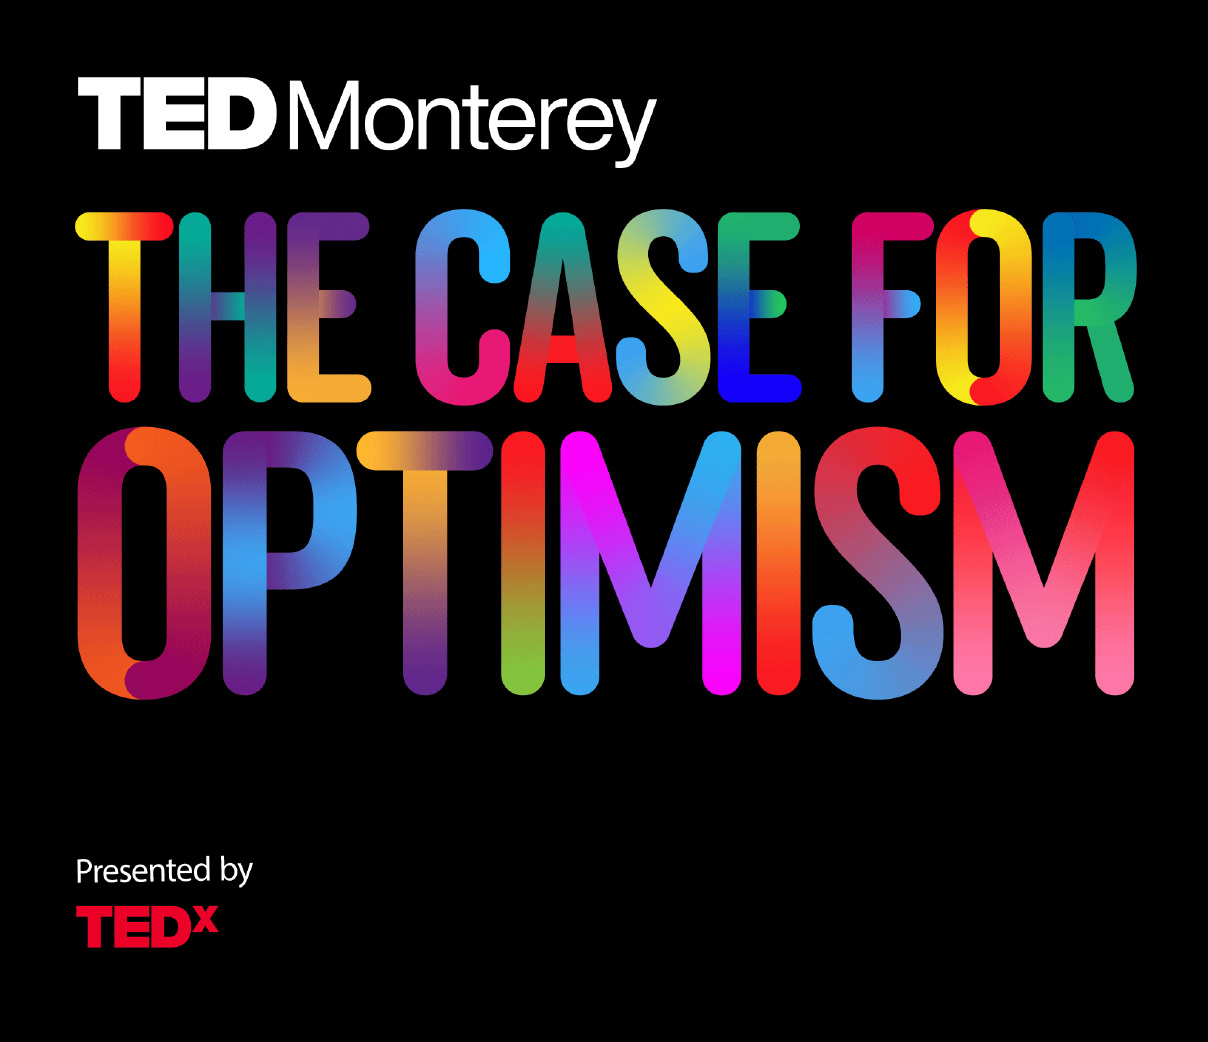 TEDMonterey logo with rainbow lettering - The Case for Optimism